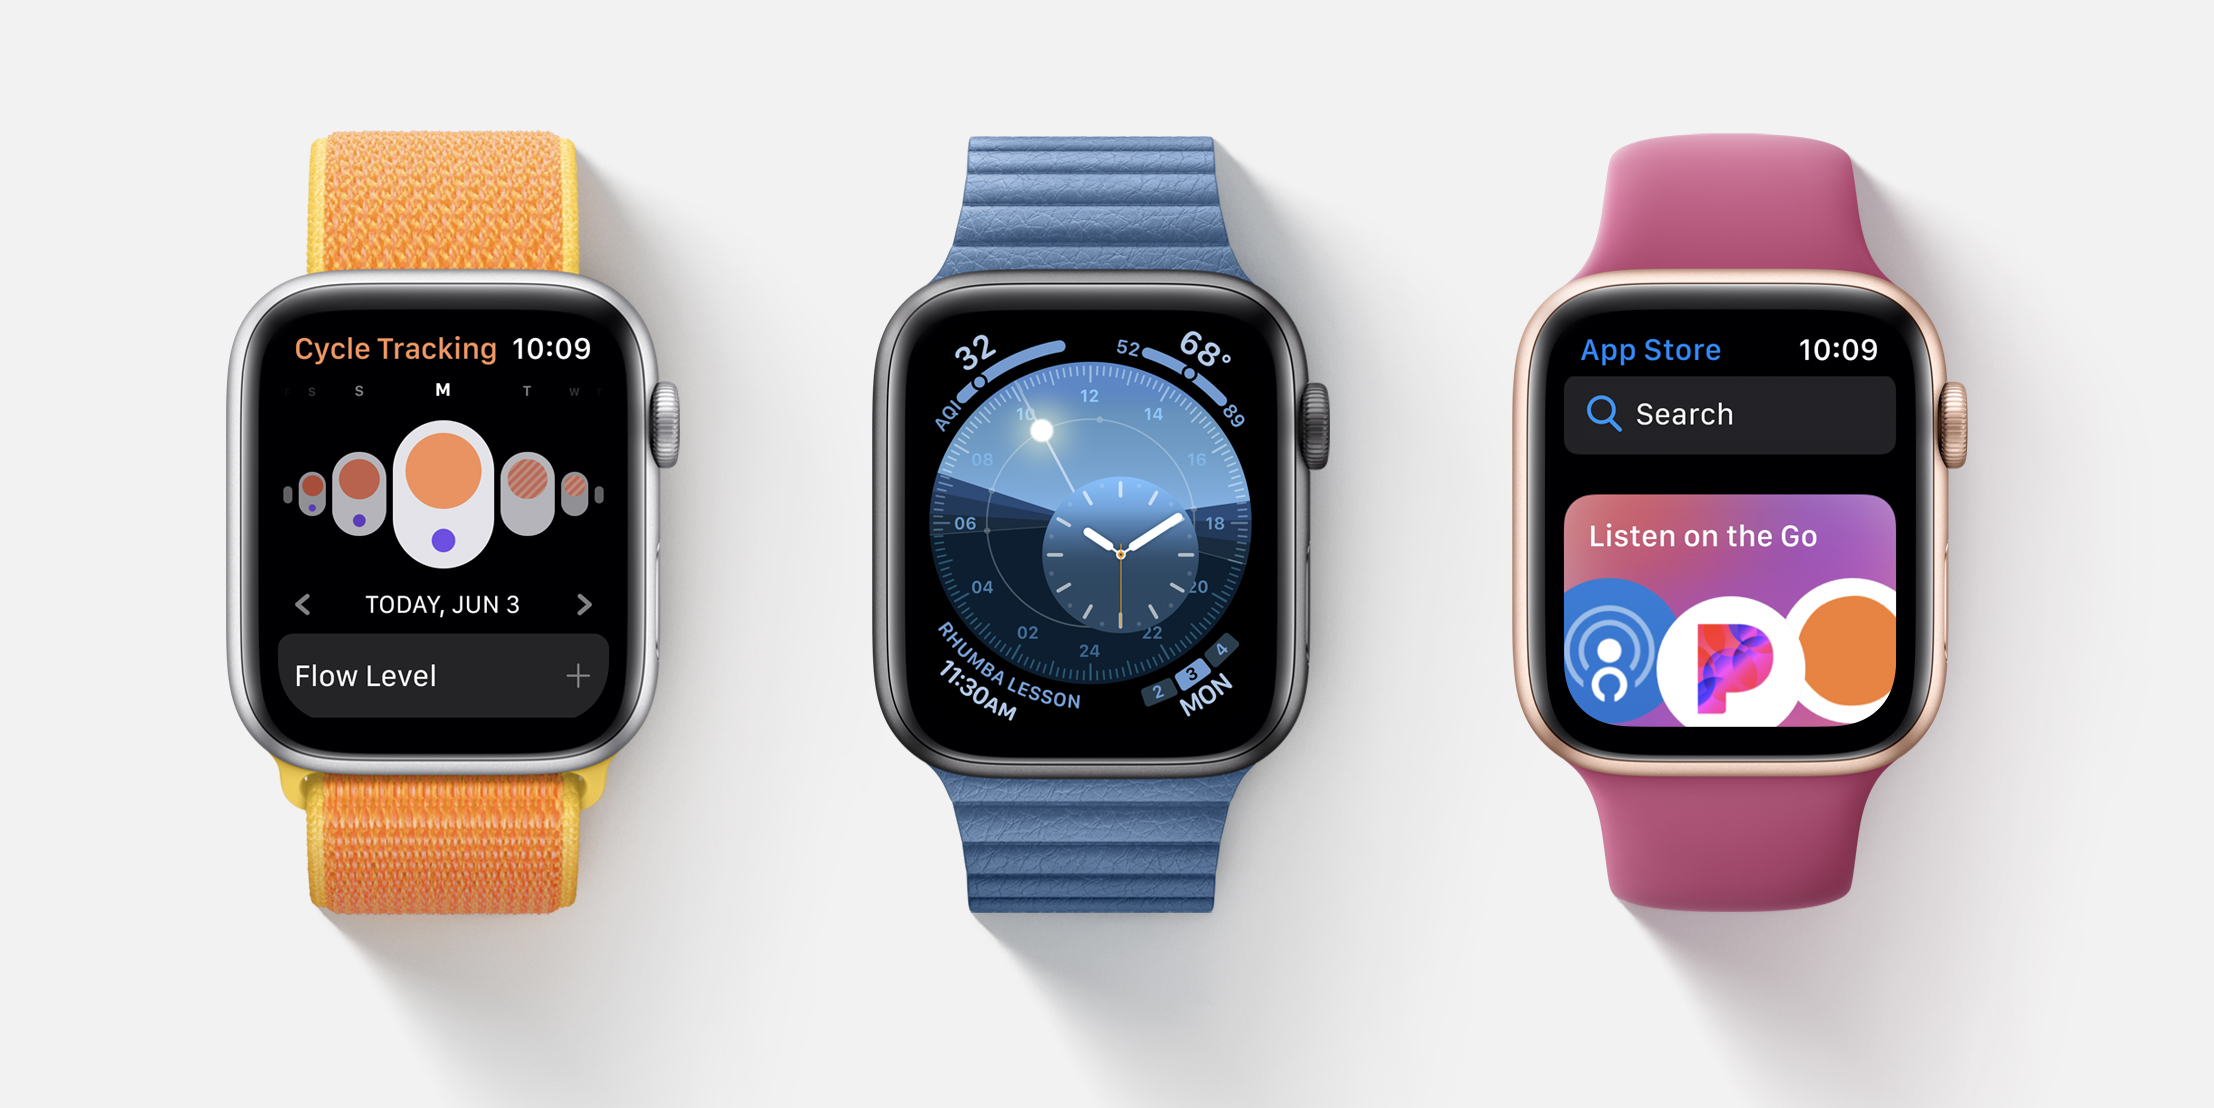 Apple Watch Series 4 Deals Take 350 Off Macbook Pro More 9to5mac